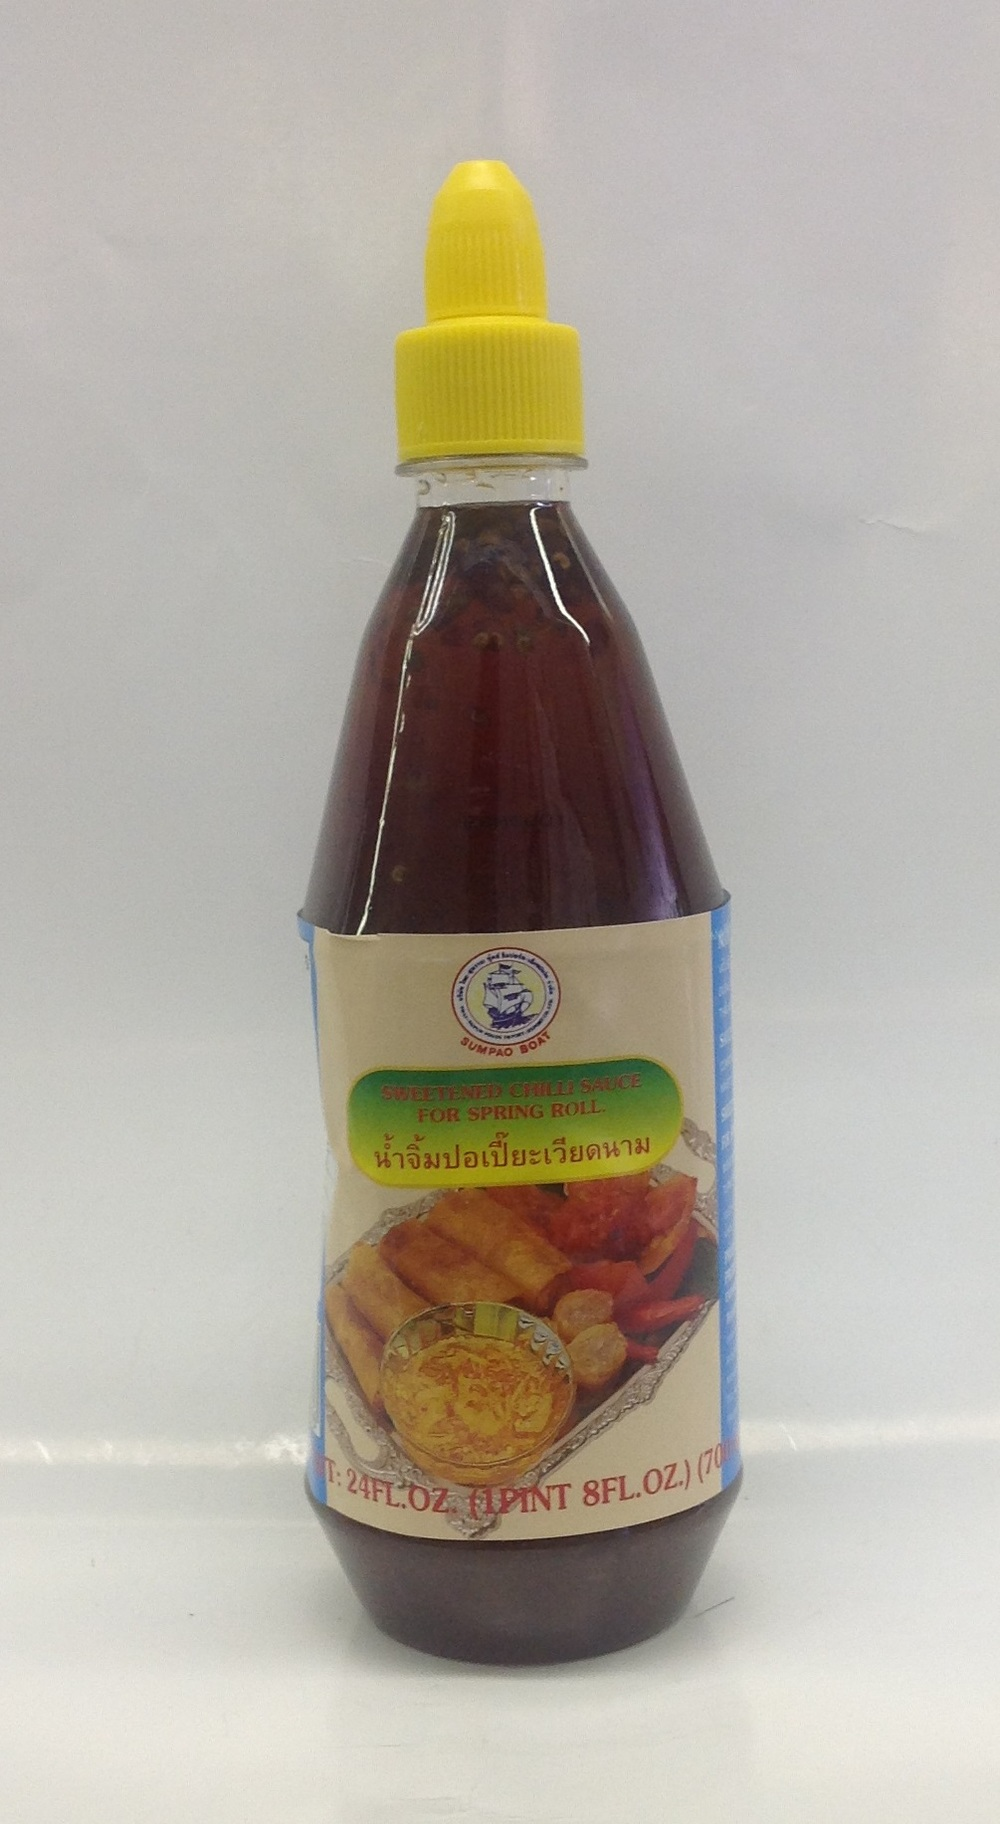 Sweetened Chili Sauce for Spring Roll   Sumpao Boat   SC16217 12x30 oz